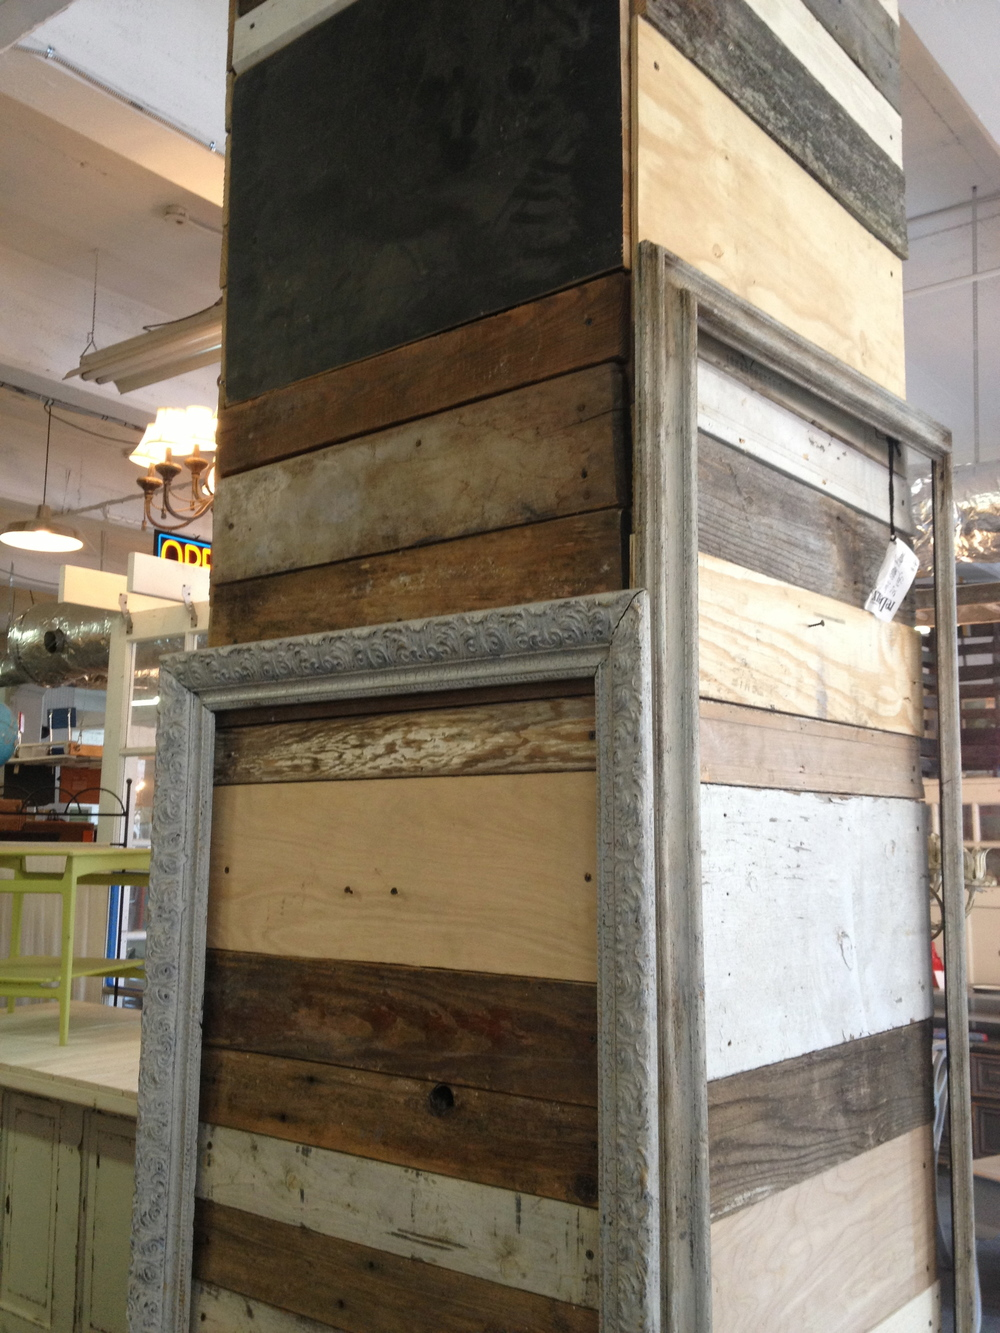 A little architecture inspiration.  The reclaimed wood wall was cool.  www.saranobledesigns.com